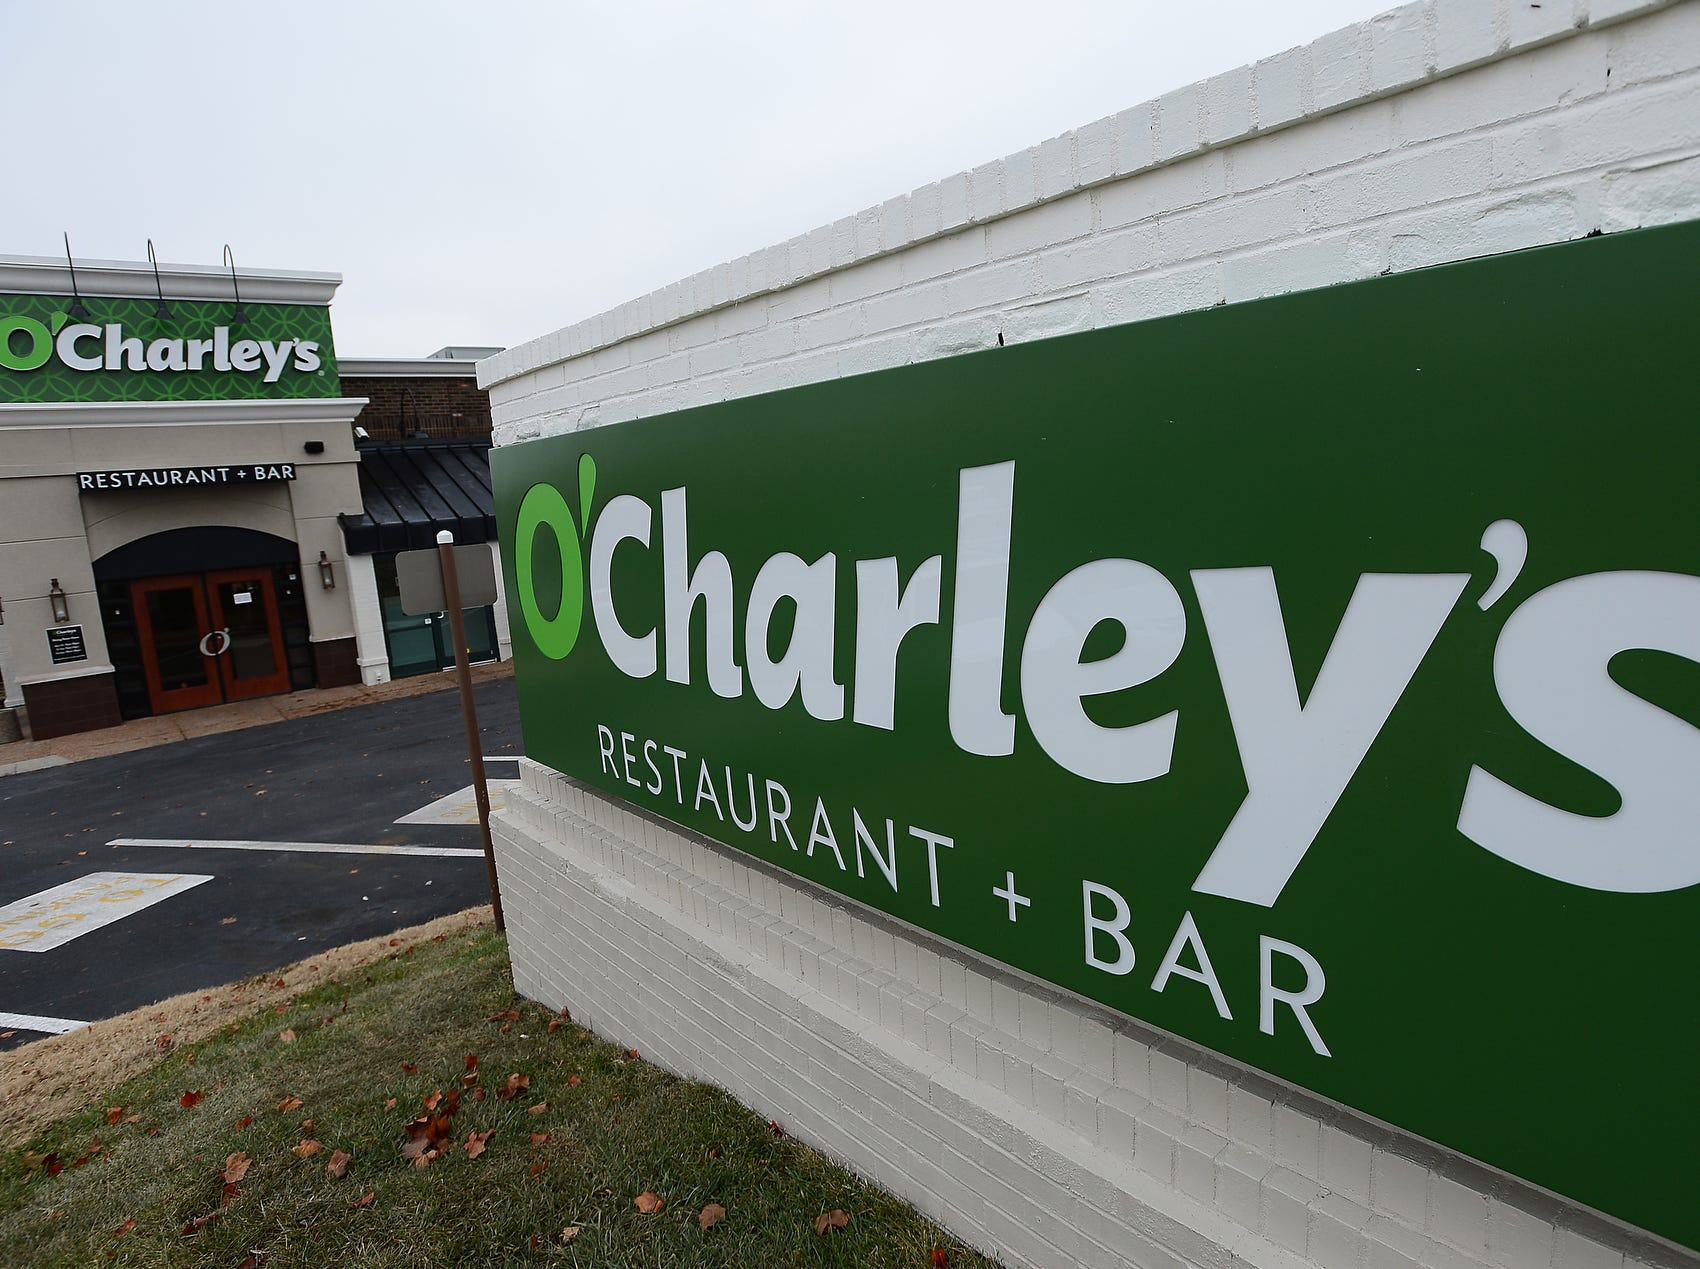 The O'Charley's on Memorial Boulevard in Murfreesboro will close Sunday, March 24, 2019.